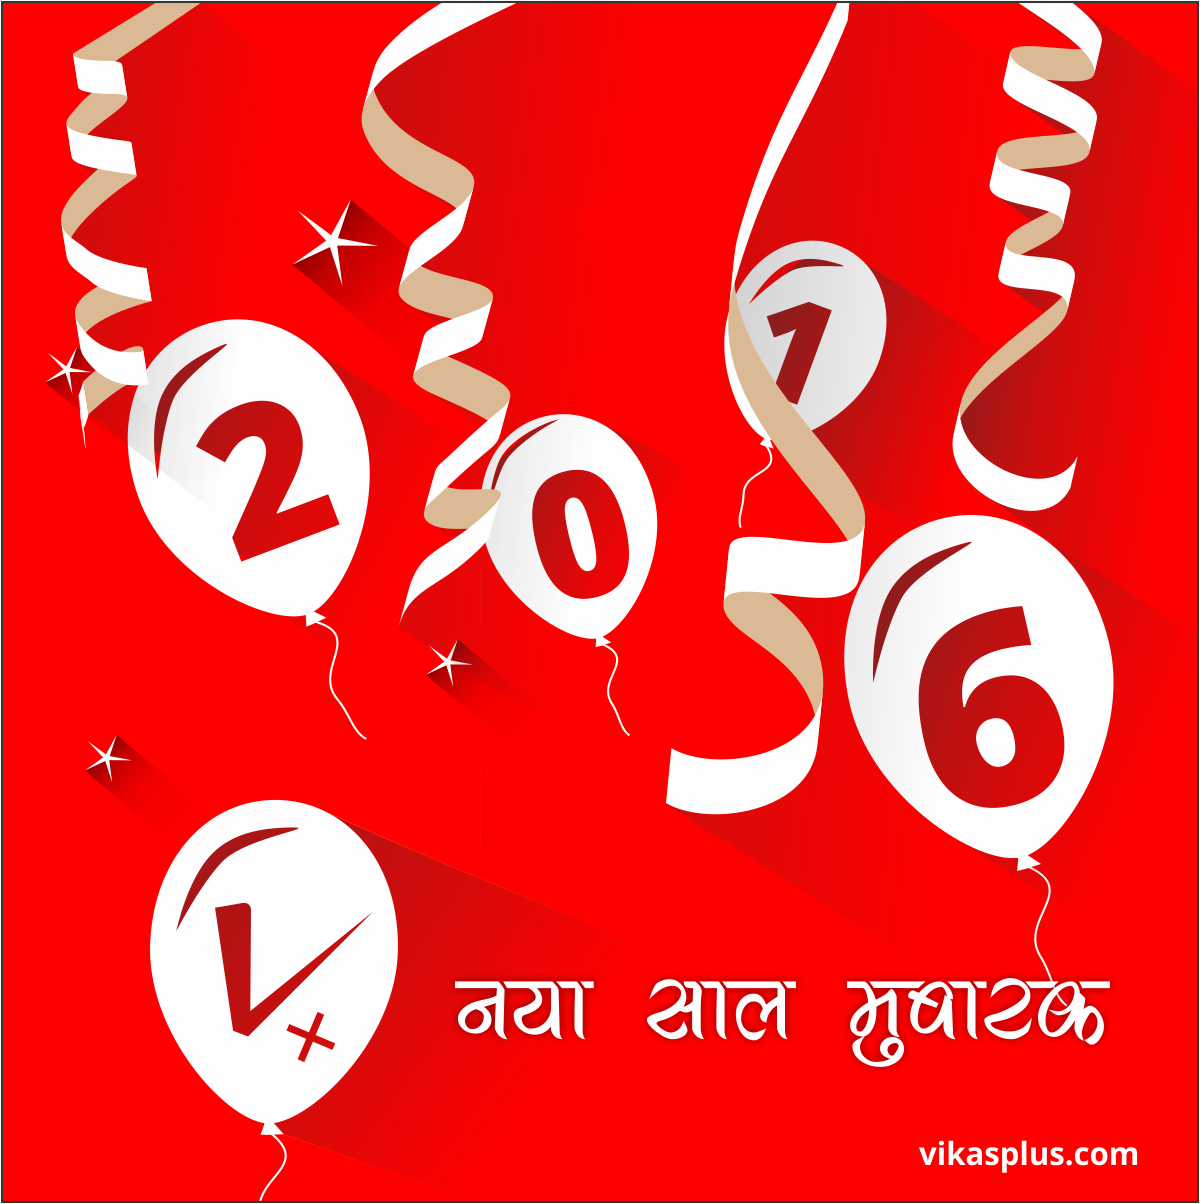 vikasplus-happy-new-year-5